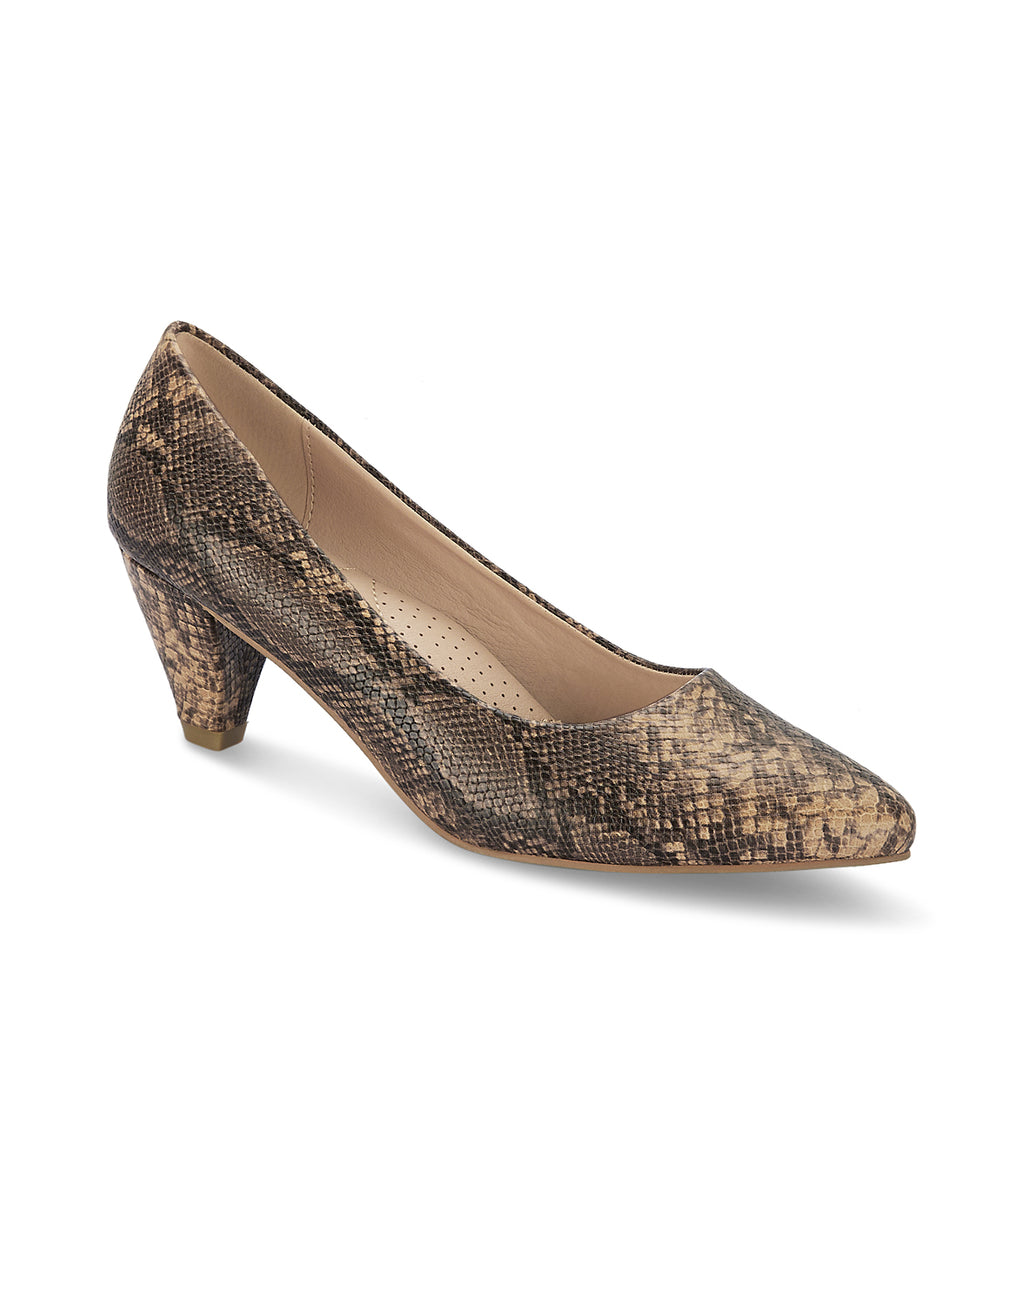 Renee Skin Pointed-Toe Pumps